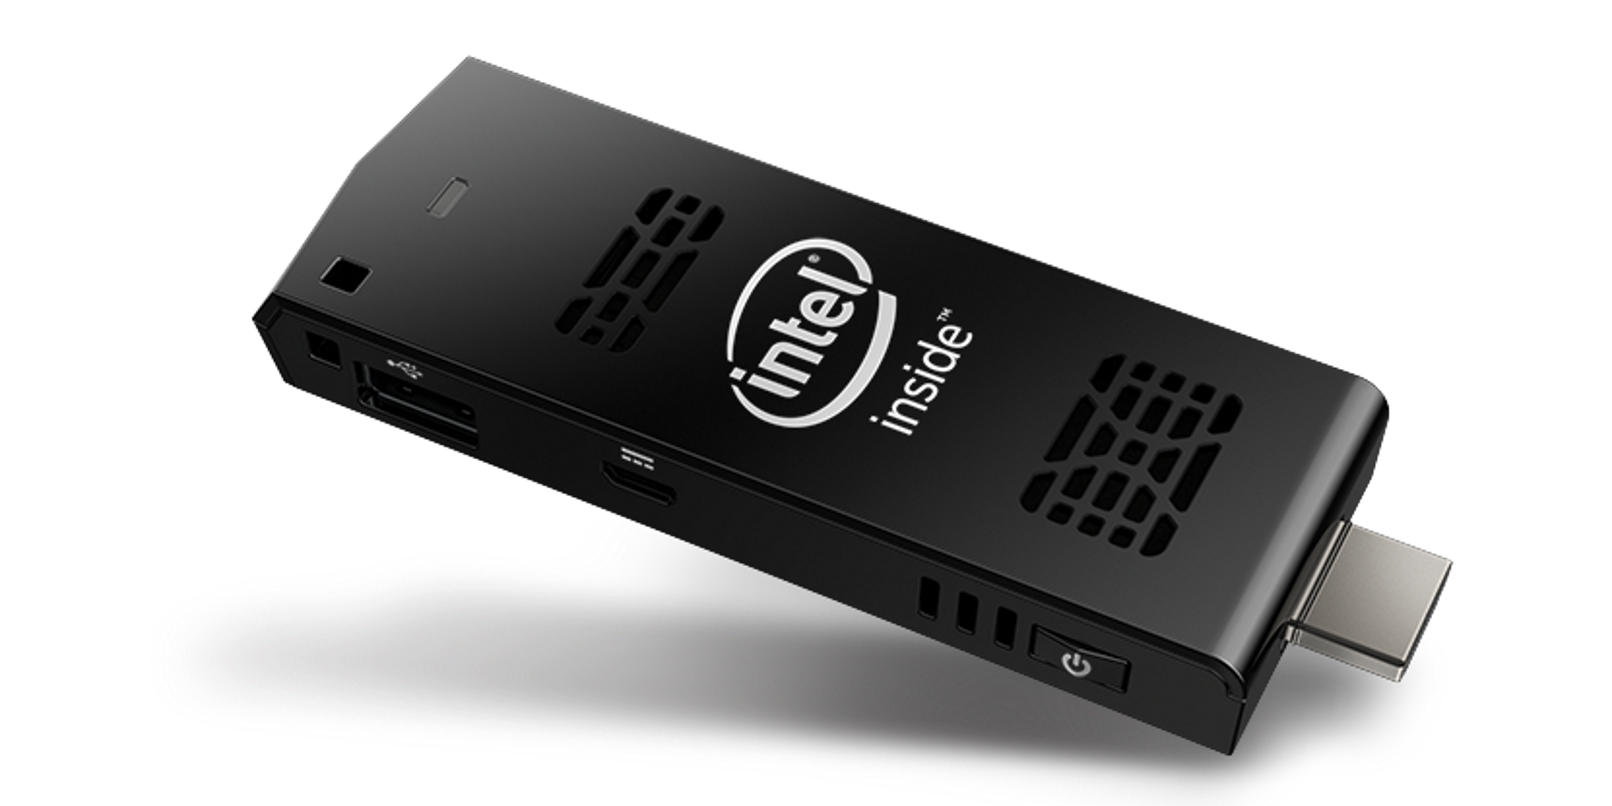 An Ubuntu HDMI dongle that runs Intel hardware is going on sale next week for $110